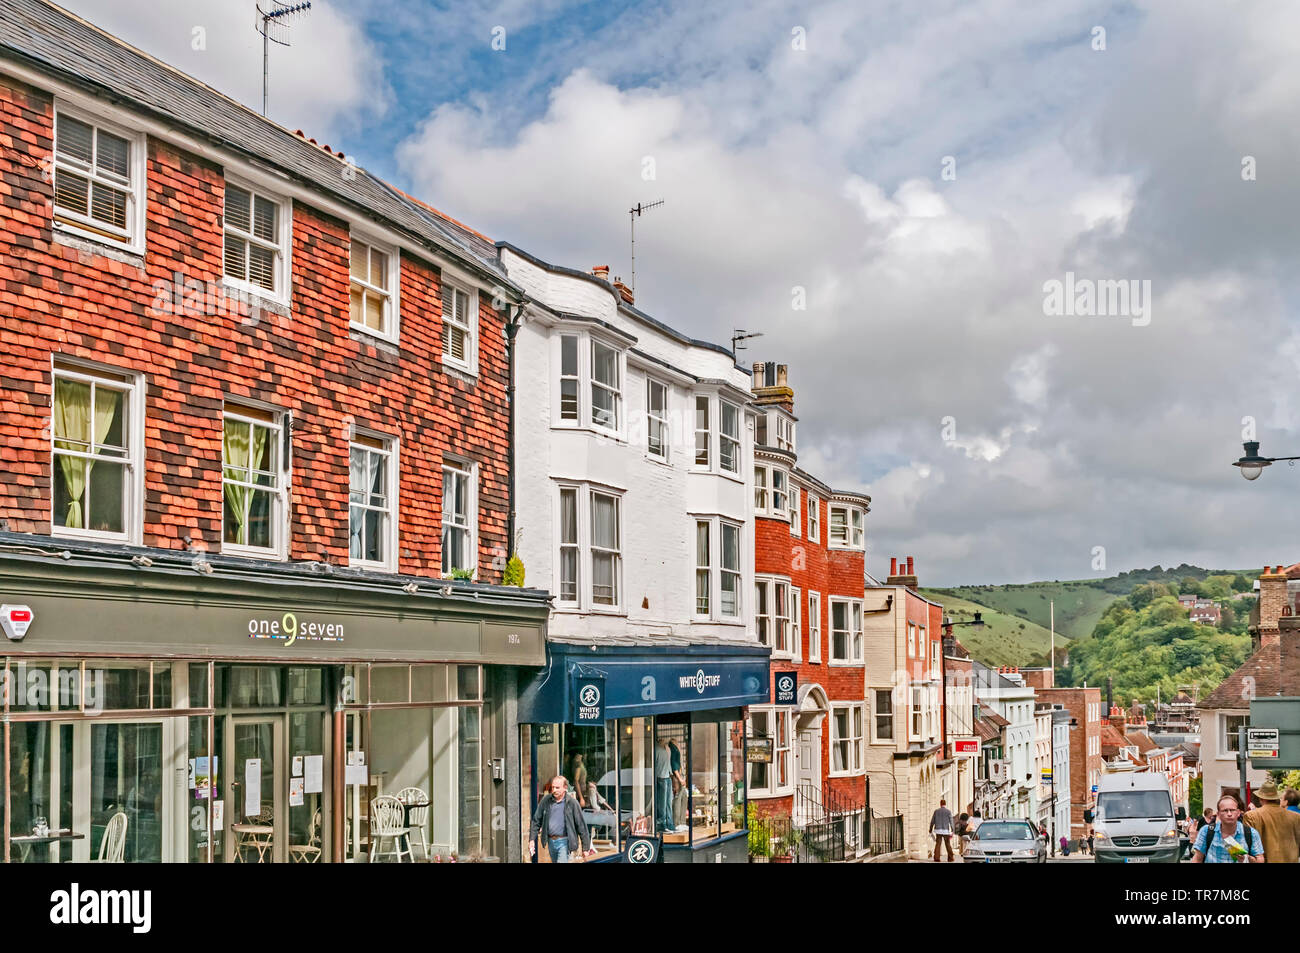 Lewes (East Sussex, England) High Street Stock Photo